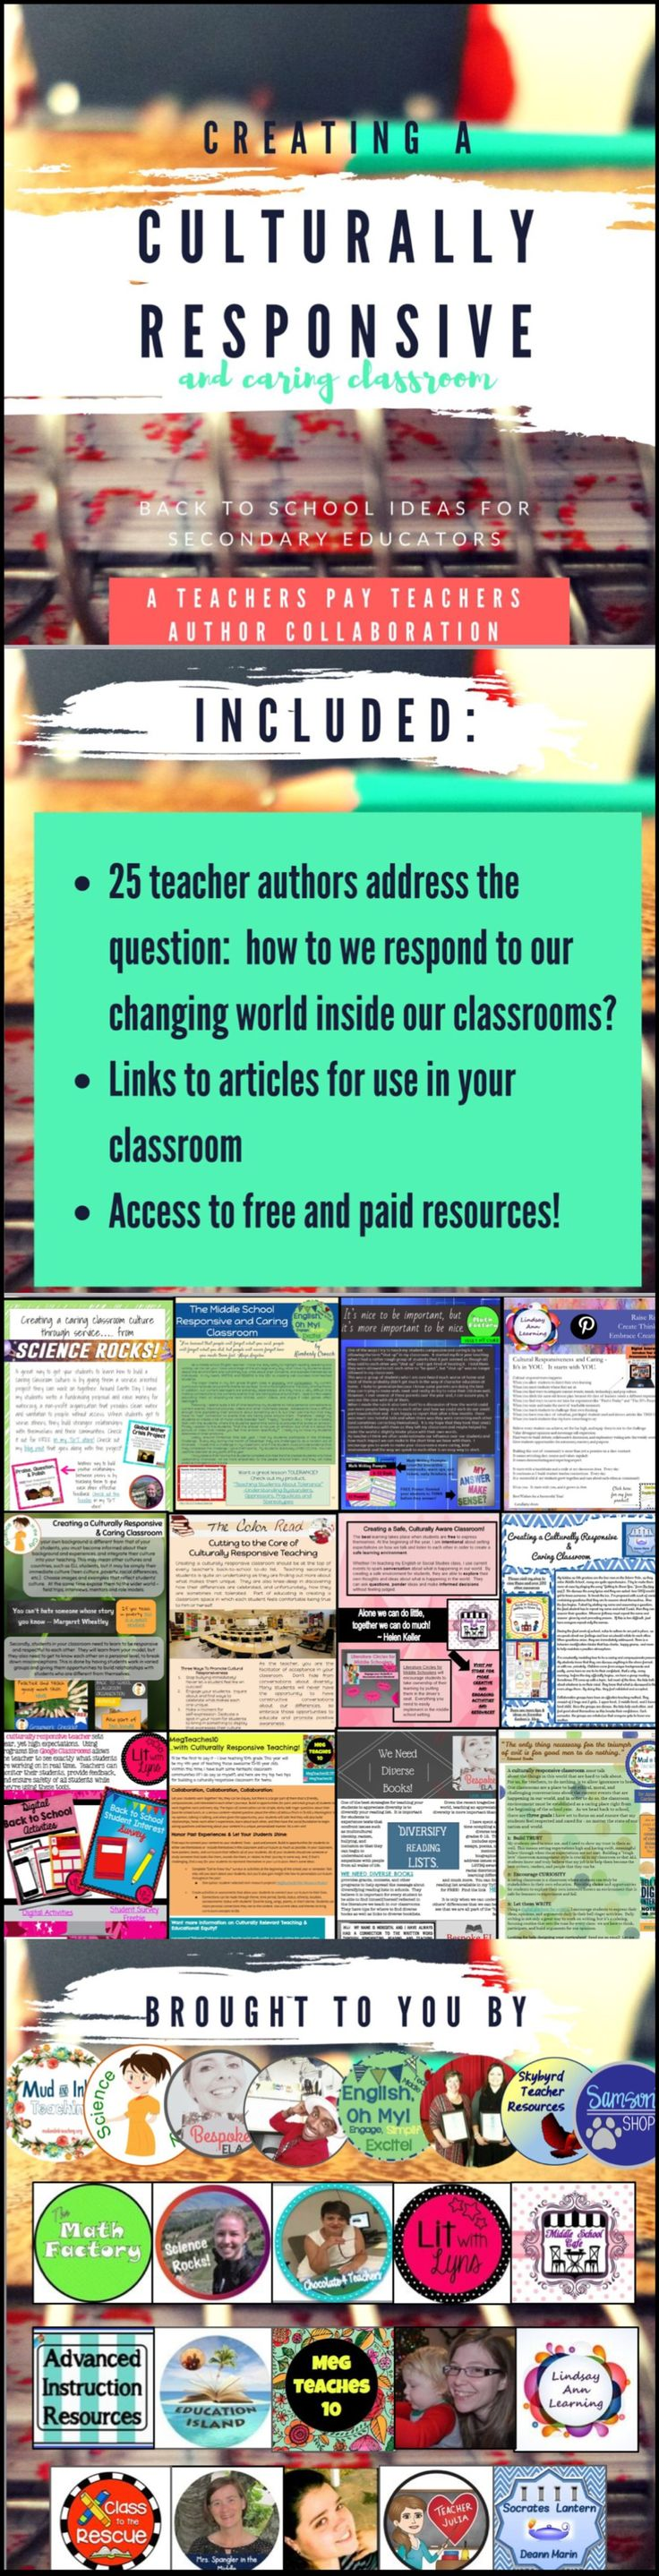 83 best culturally responsive teaching images on pinterest spanish 25 teachers got together to talk about how to deal with our changing tumultuous world fandeluxe Gallery